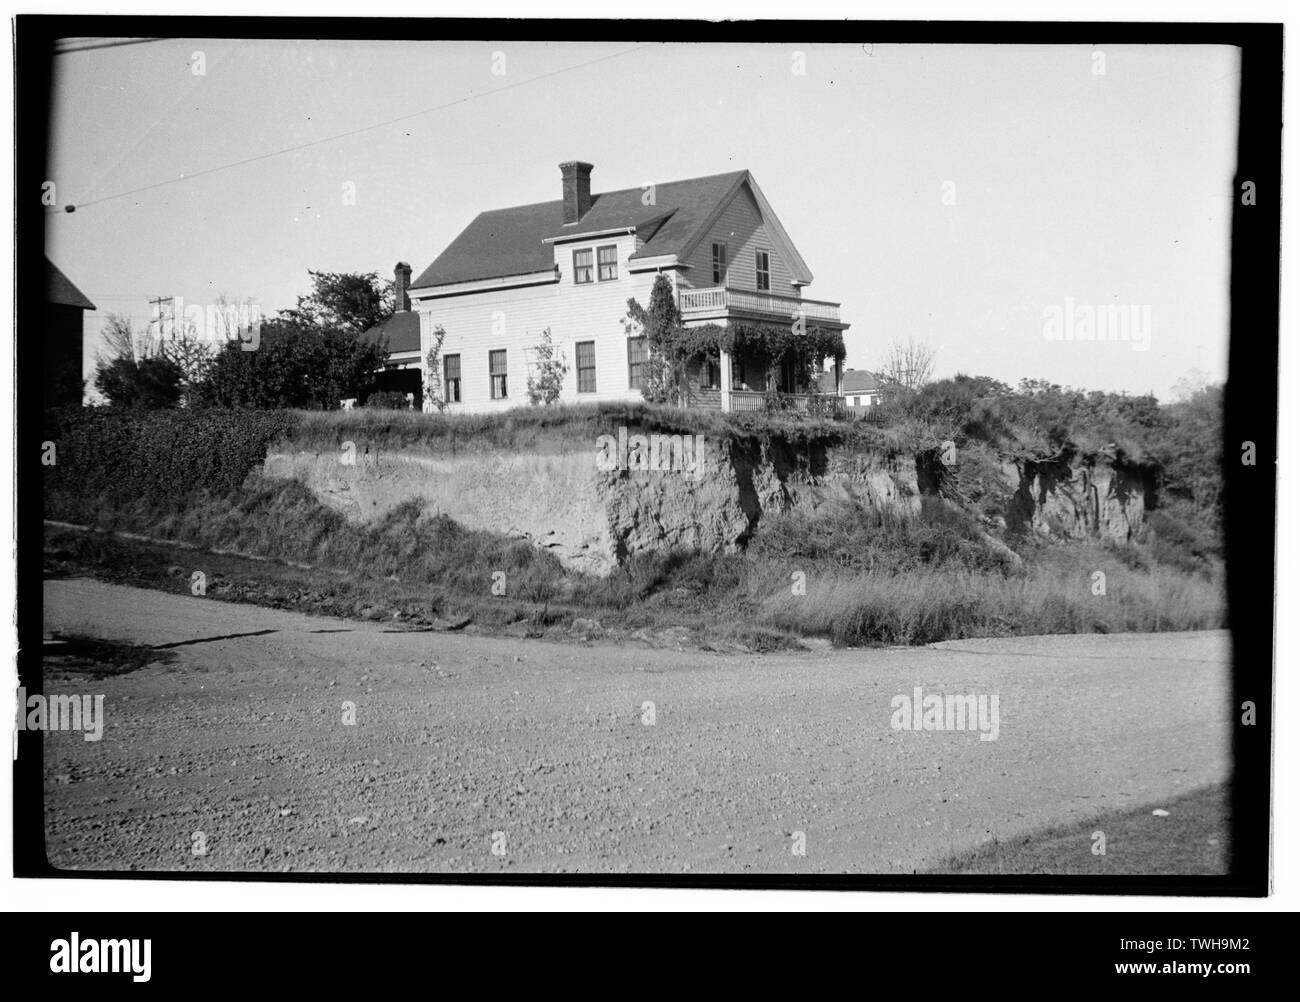 - Rothschild House, Jefferson and Taylor Streets, Port Townsend, Jefferson County, WA - Stock Image